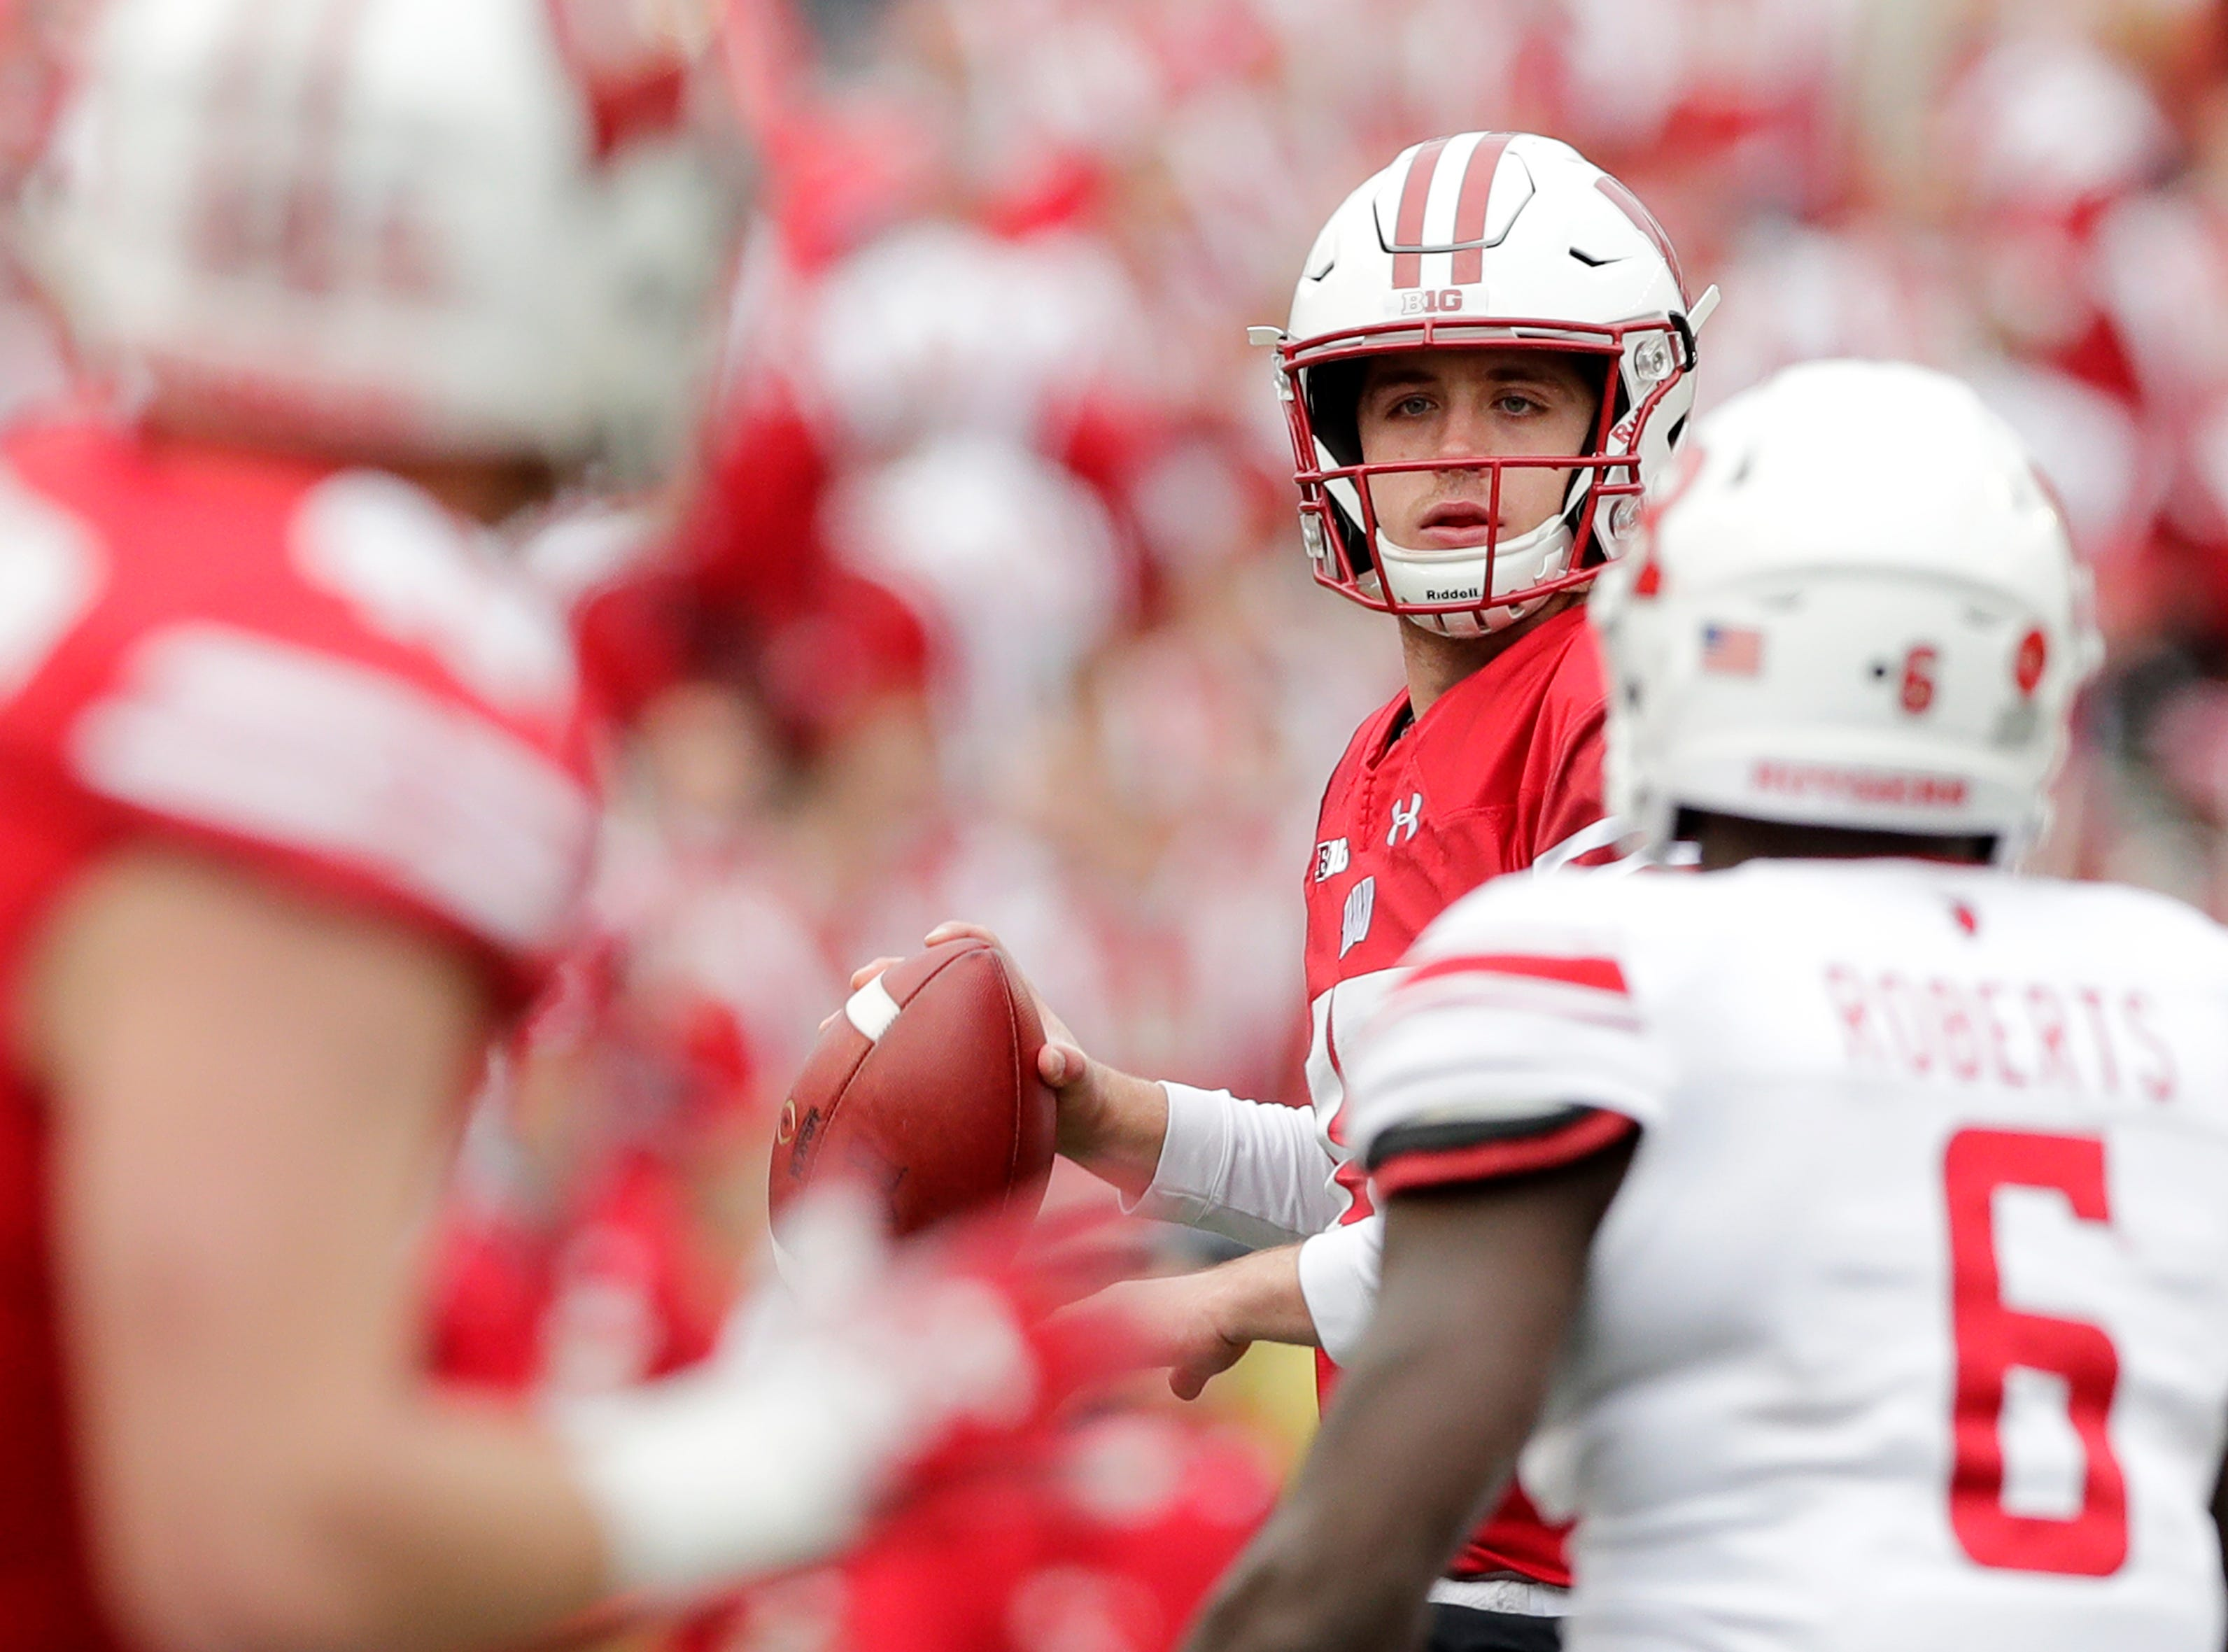 Wisconsin Badgers quarterback Jack Coan (17) scrambles in the fourth quarter against the Rutgers Scarlet Knights in a Big Ten football game at Camp Randall Stadium on Saturday, November 3, 2018 in Madison, Wis.Adam Wesley/USA TODAY NETWORK-Wisconsin